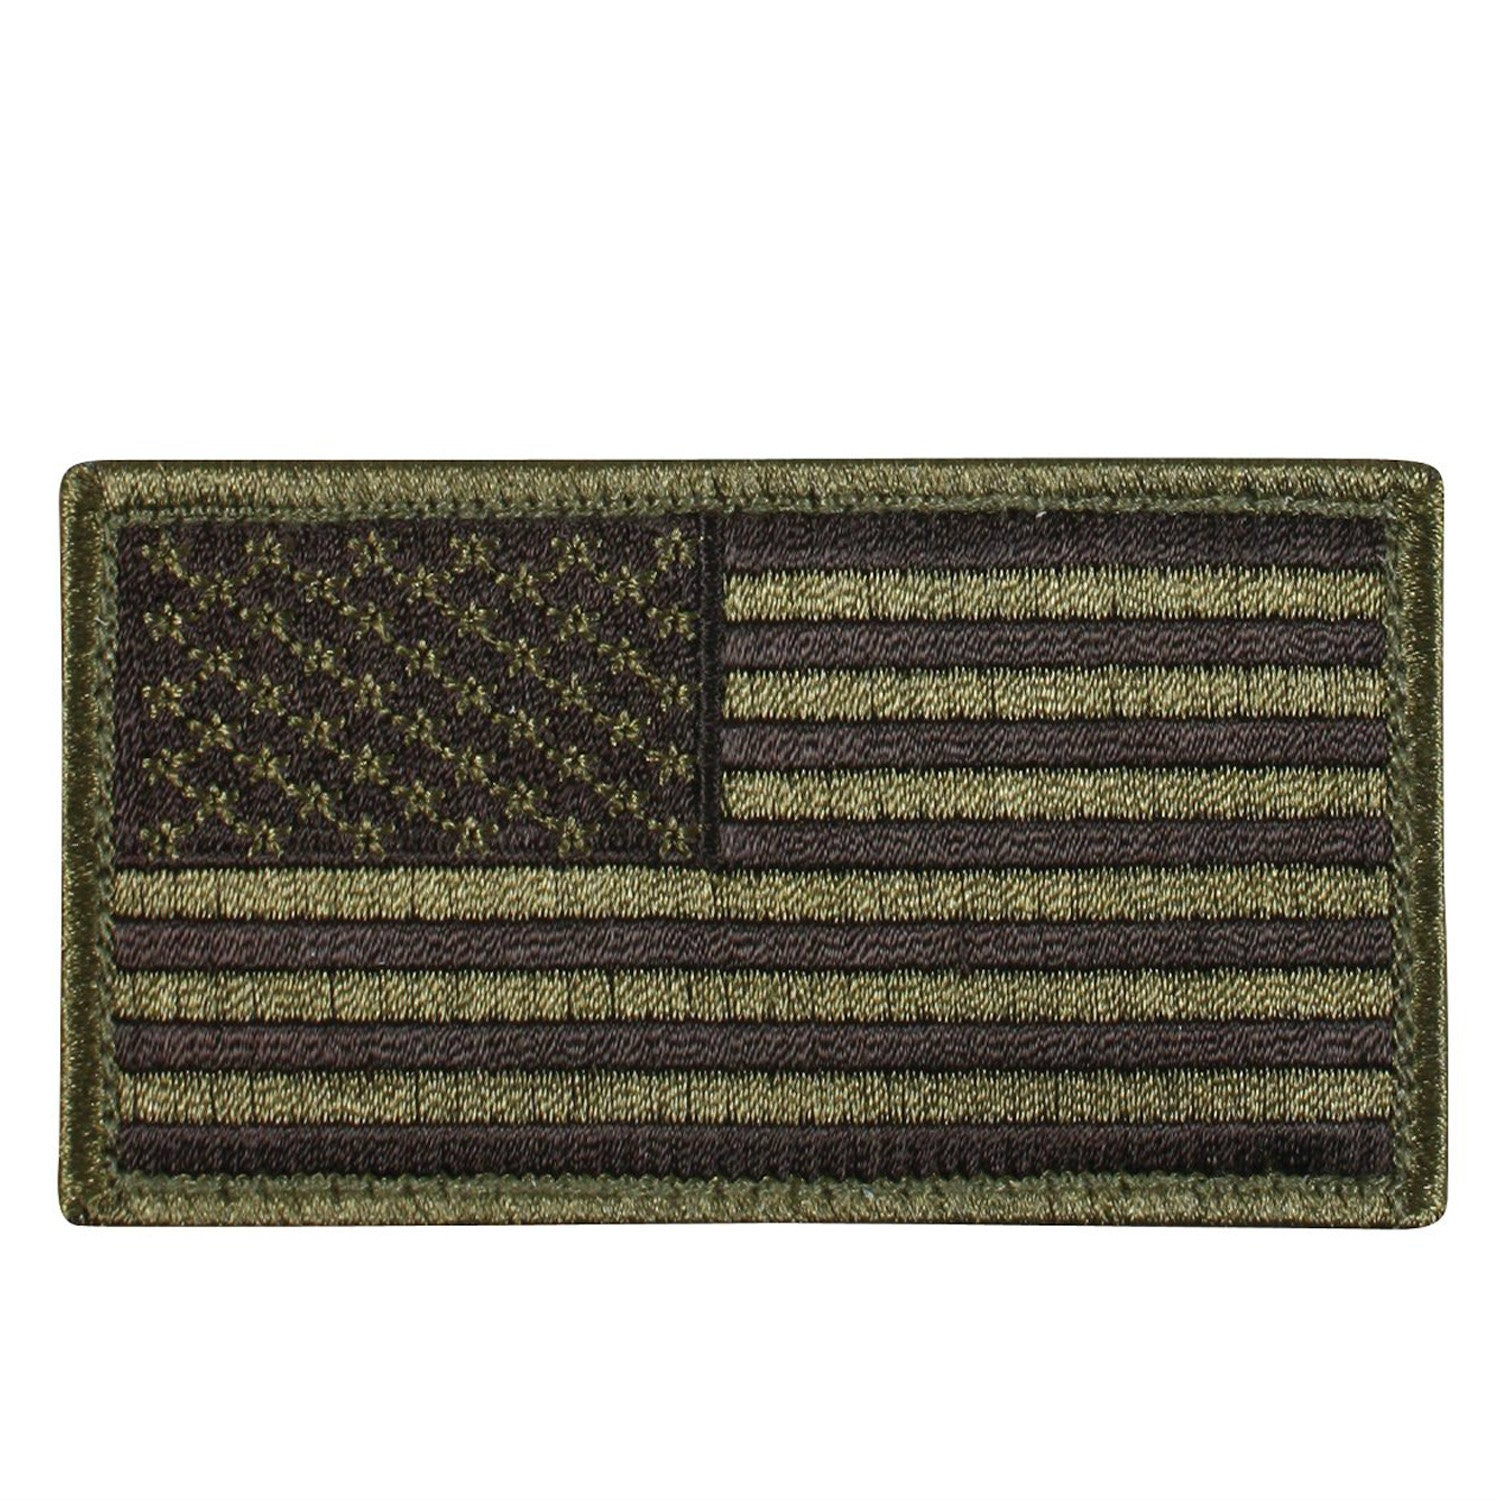 Olive Drab / Black Hook & Loop Flag Patch - Indy Army Navy